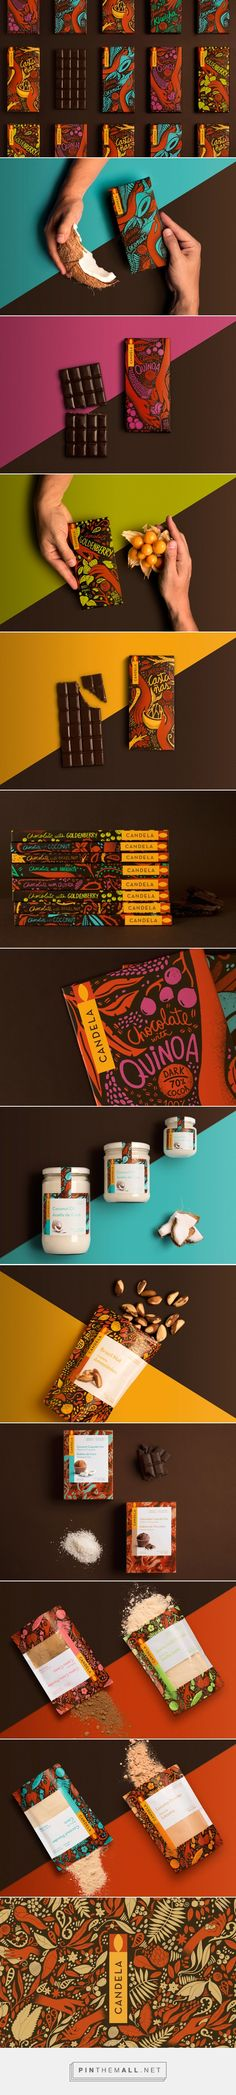 Candela chocolate packaging design by Infinito Consultores - http://www.packagingoftheworld.com/2017/04/candela.html